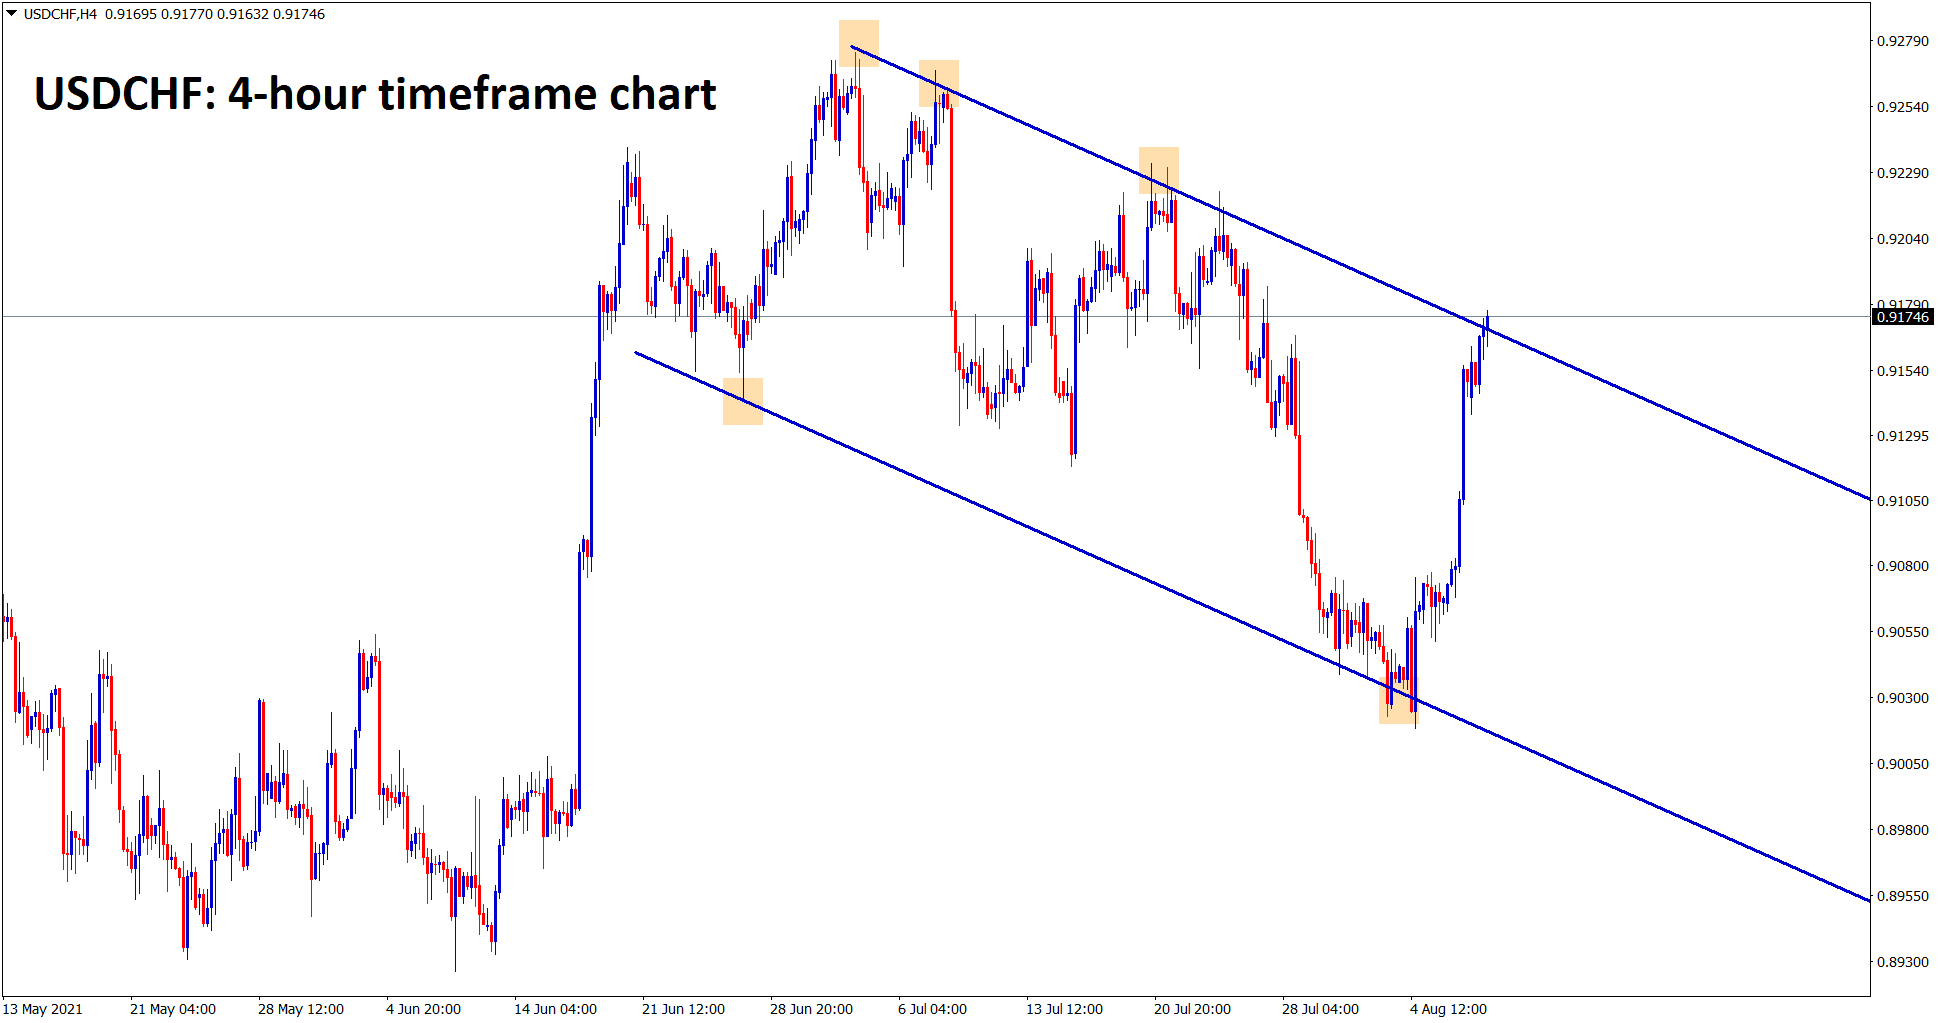 USDCHF is standing now at the lower high zone of the descending channel range in the 4 hour timeframe chart.